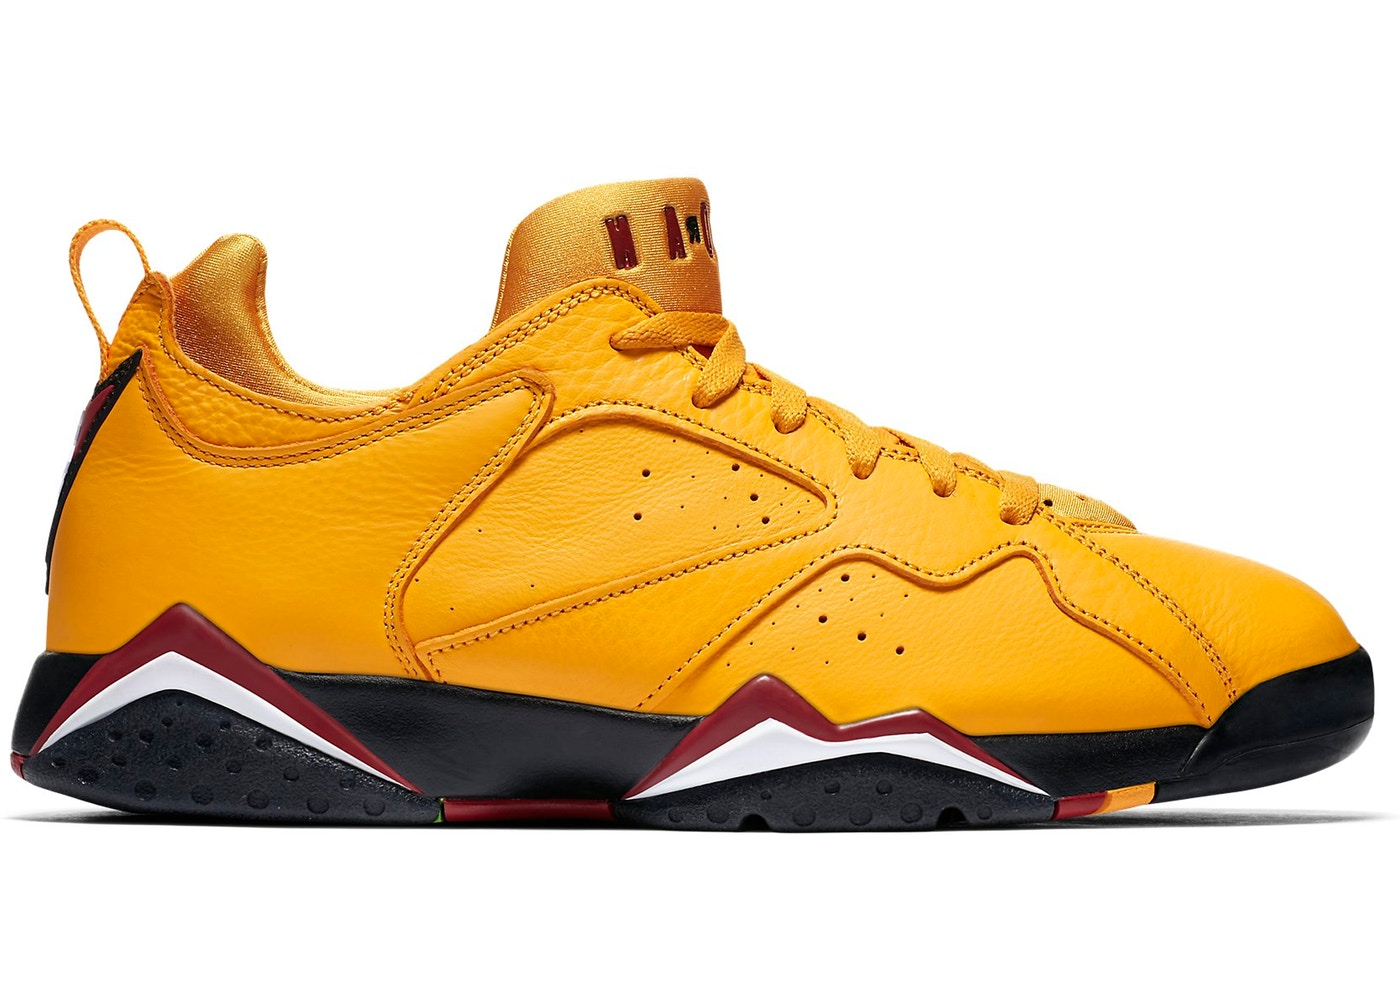 separation shoes 2ba5a 0aac0 Jordan 7 Retro Low Taxi